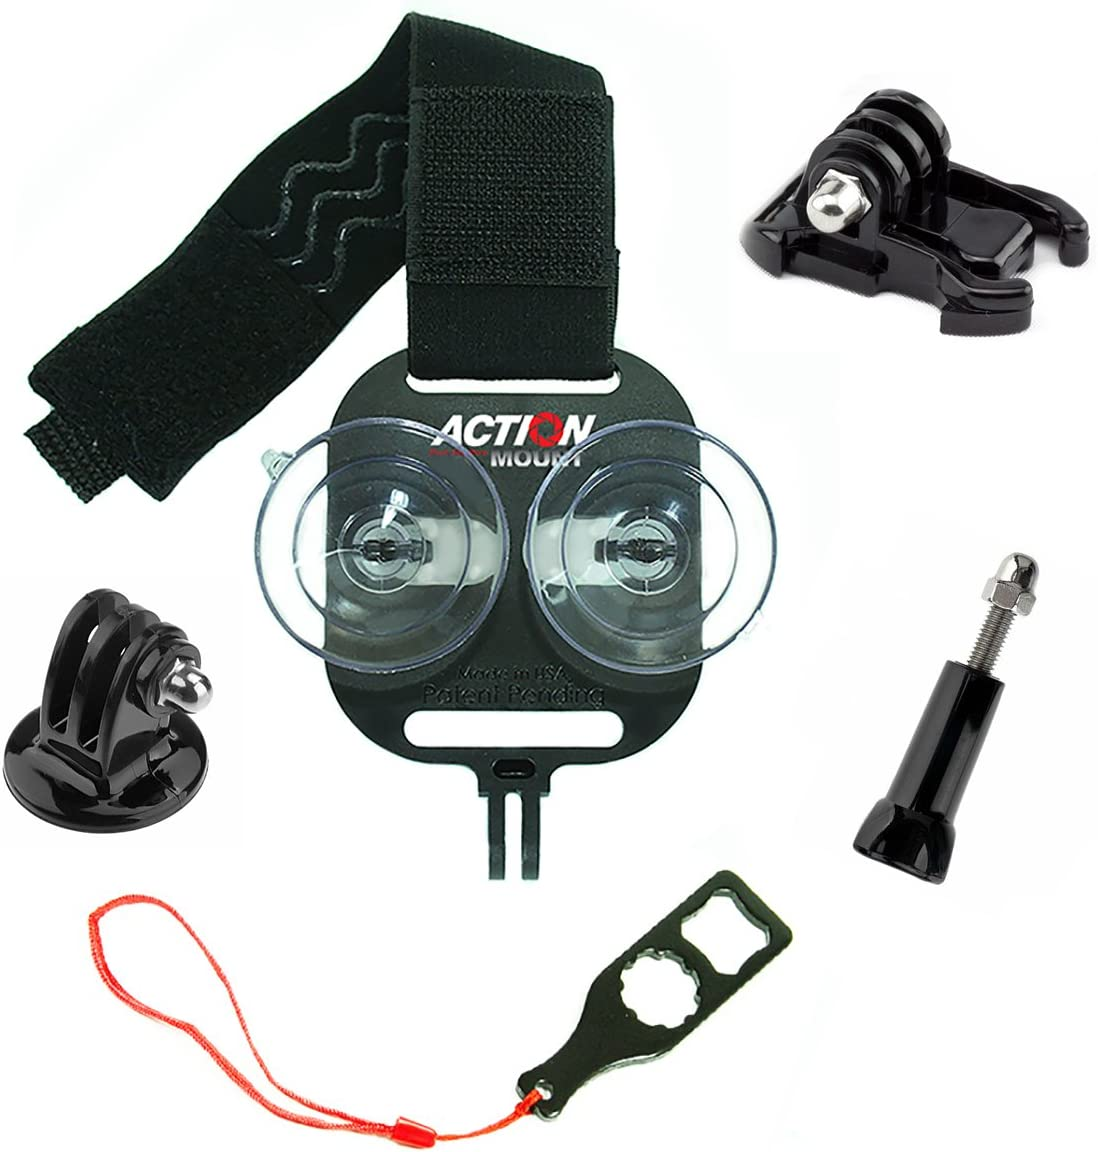 Action Mount - Universal Smartphone Mount Set Add-On for Video. Attach to Any Sport Camera Mount for Use with Phone While Hunting & Fishing. (Action Mount Setup)